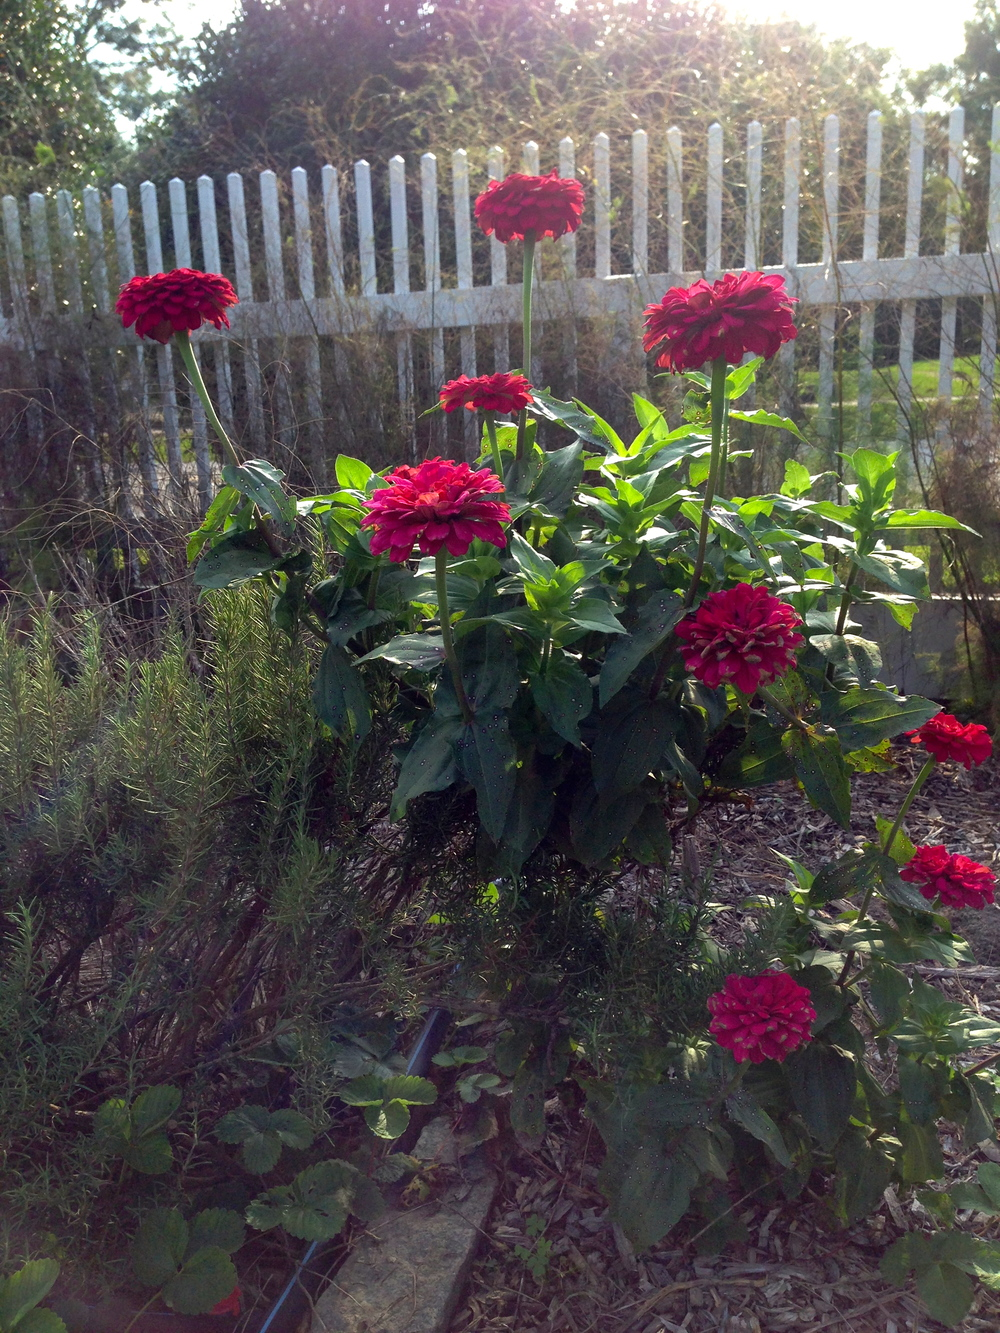 And August's zinnias still bloom brightly in the afternoon sun too.